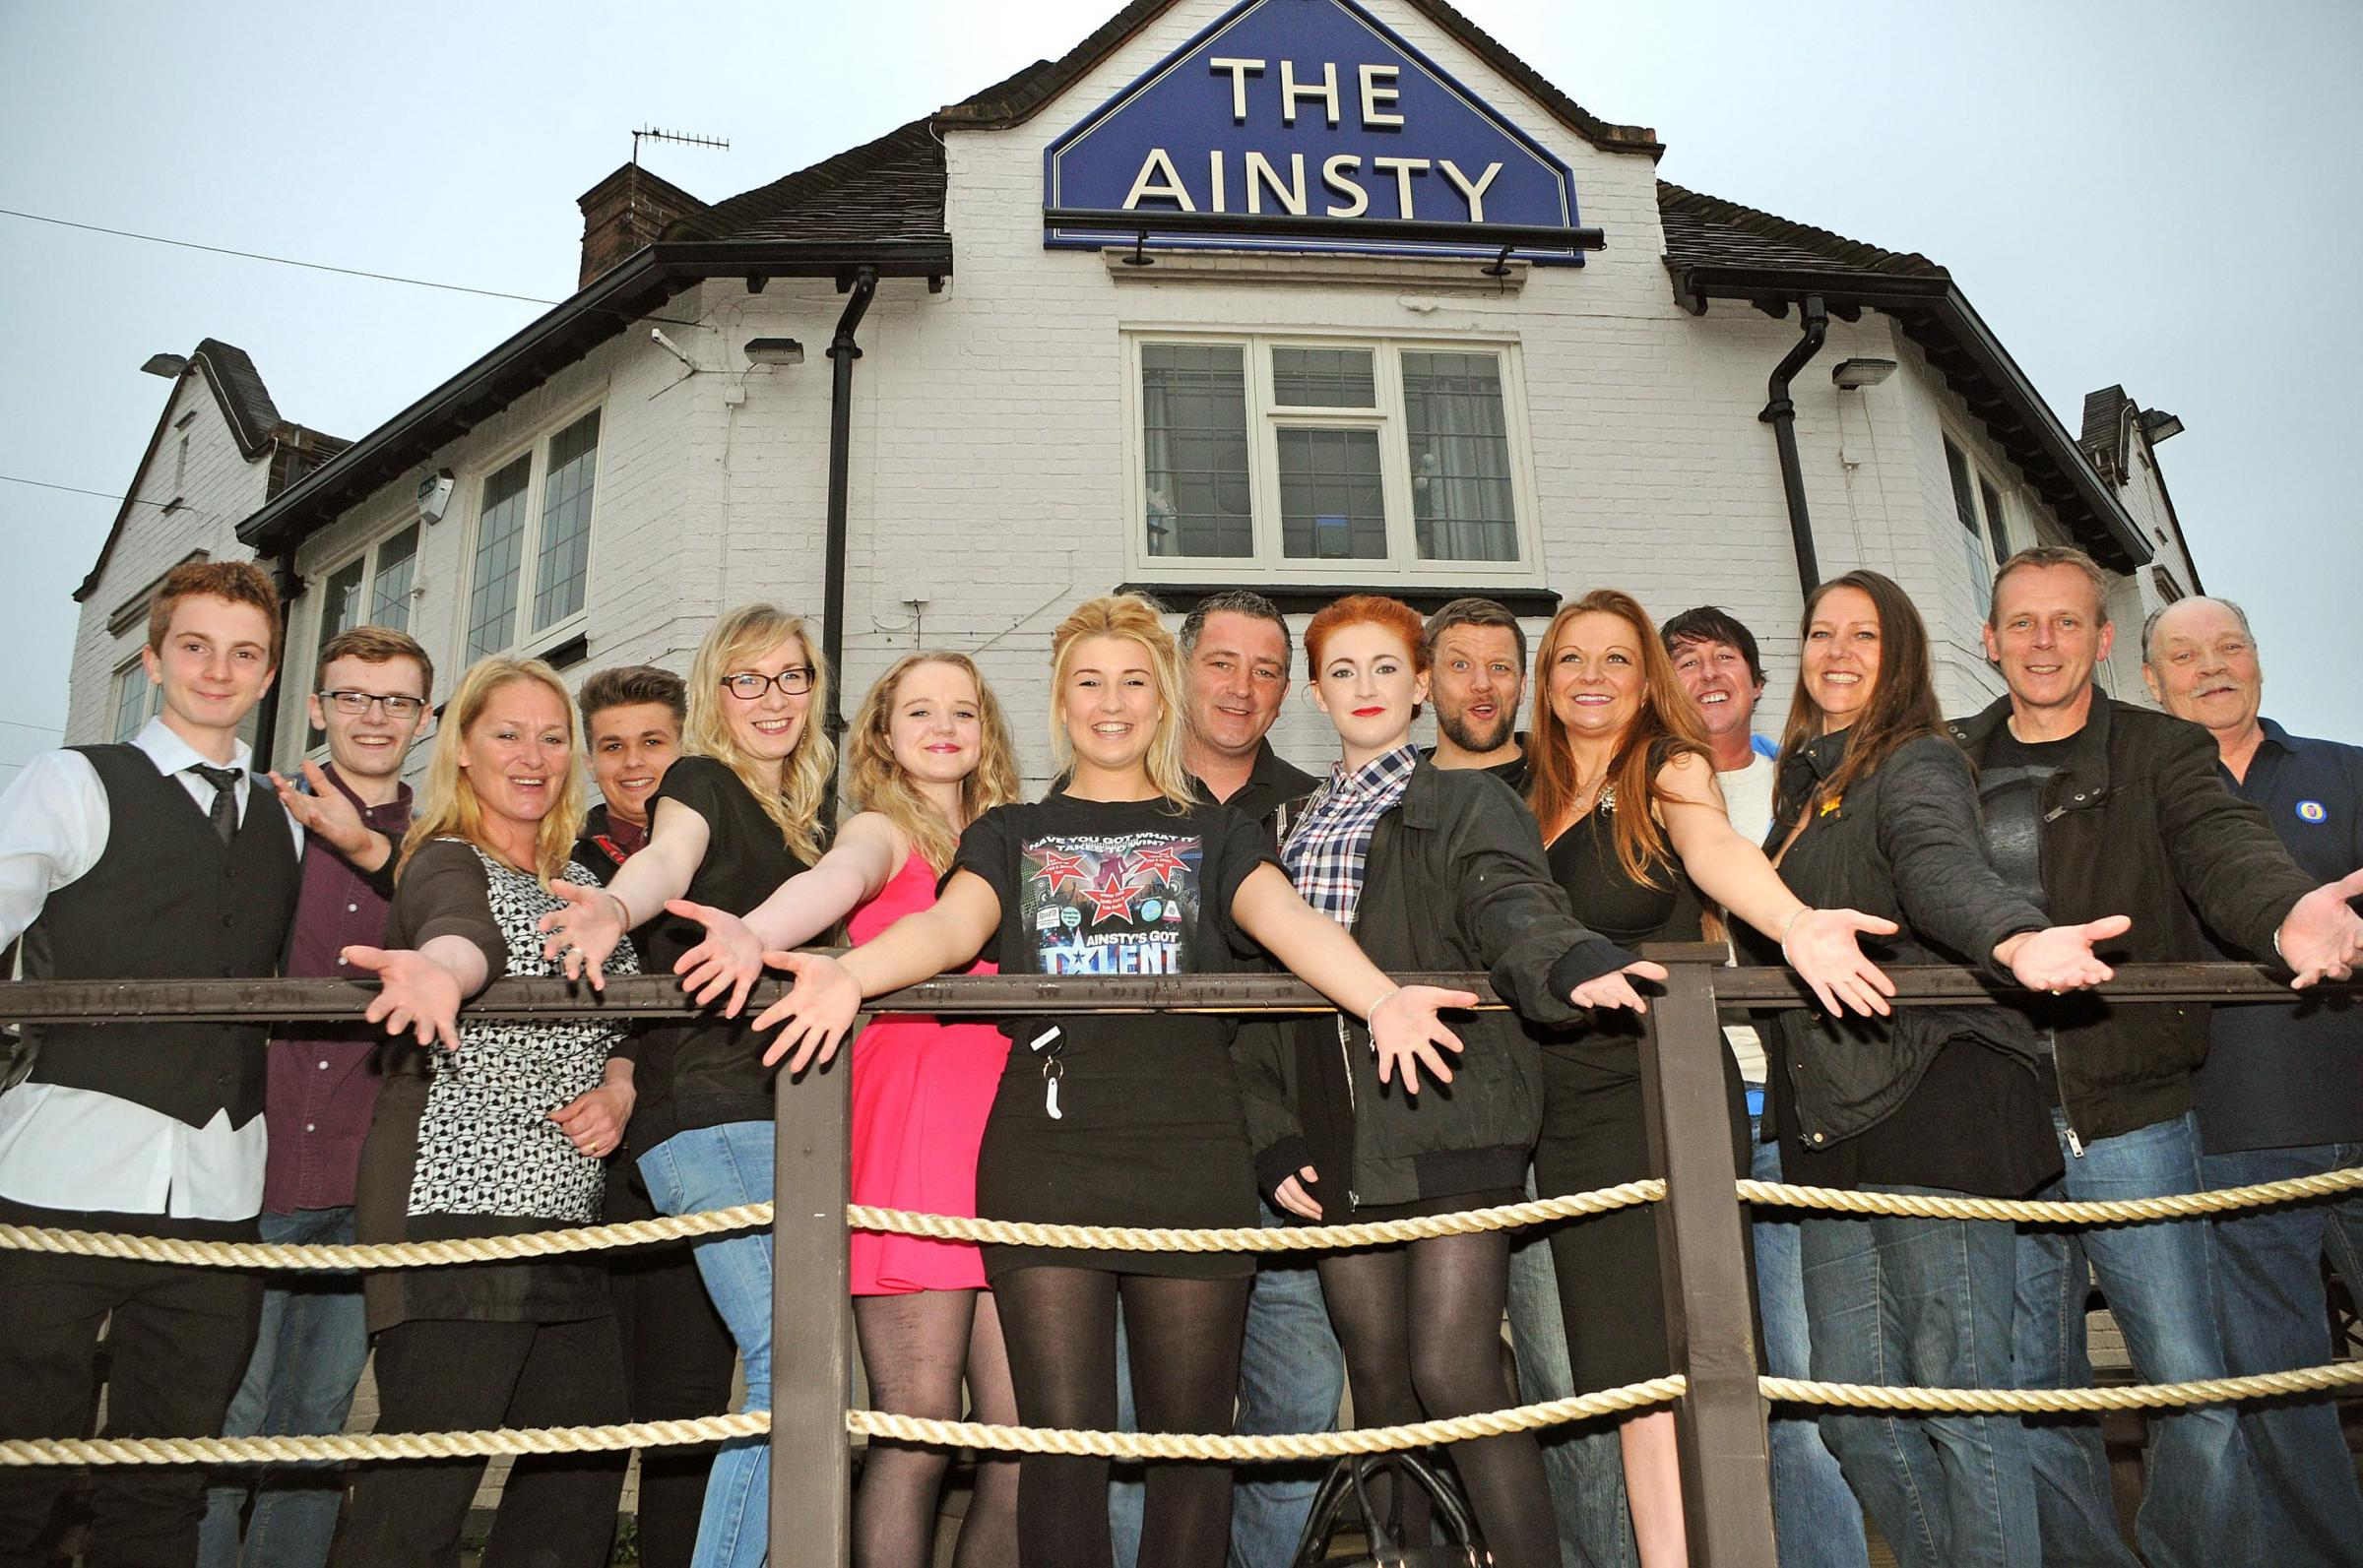 Contestants line up for the first round of the Ainsty Pub talent competition